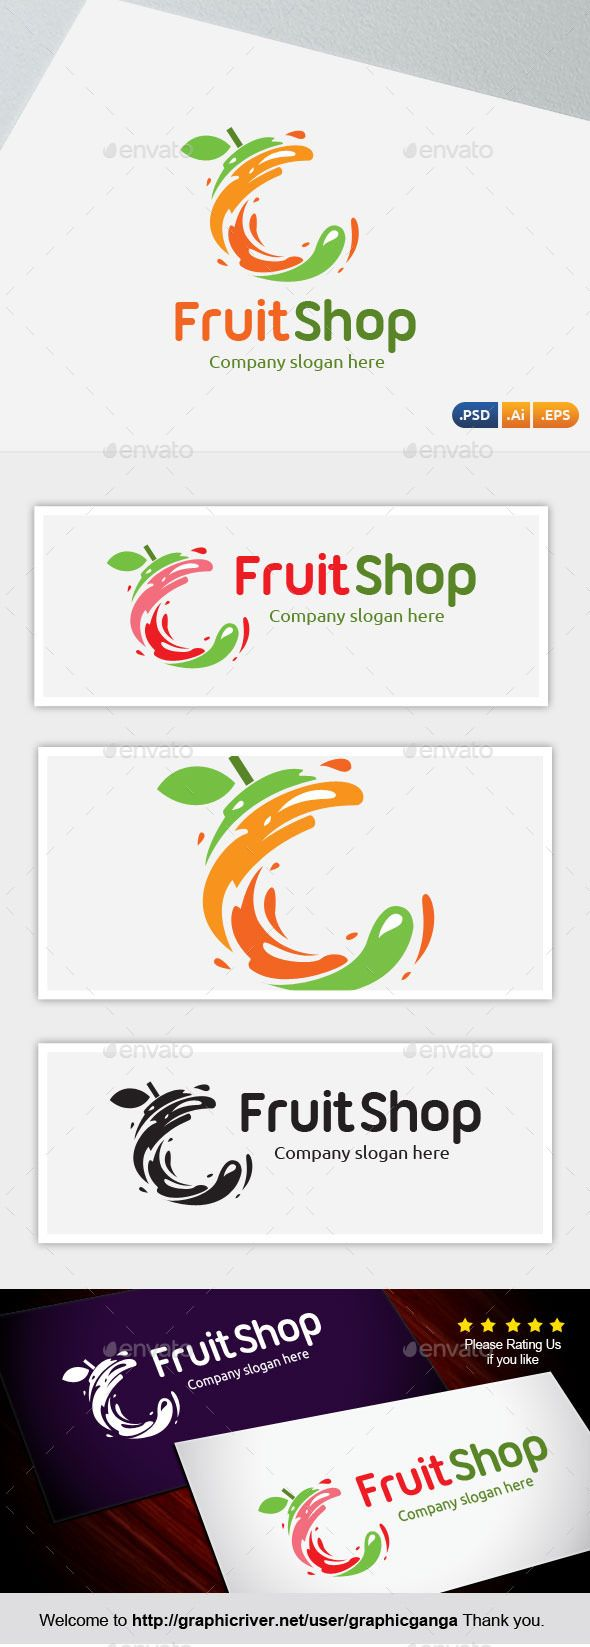 Fruit Shop Logo Design Template Vector #logotype Download it here: http://graphicriver.net/item/fruit-shop/11929869?s_rank=659?ref=nesto